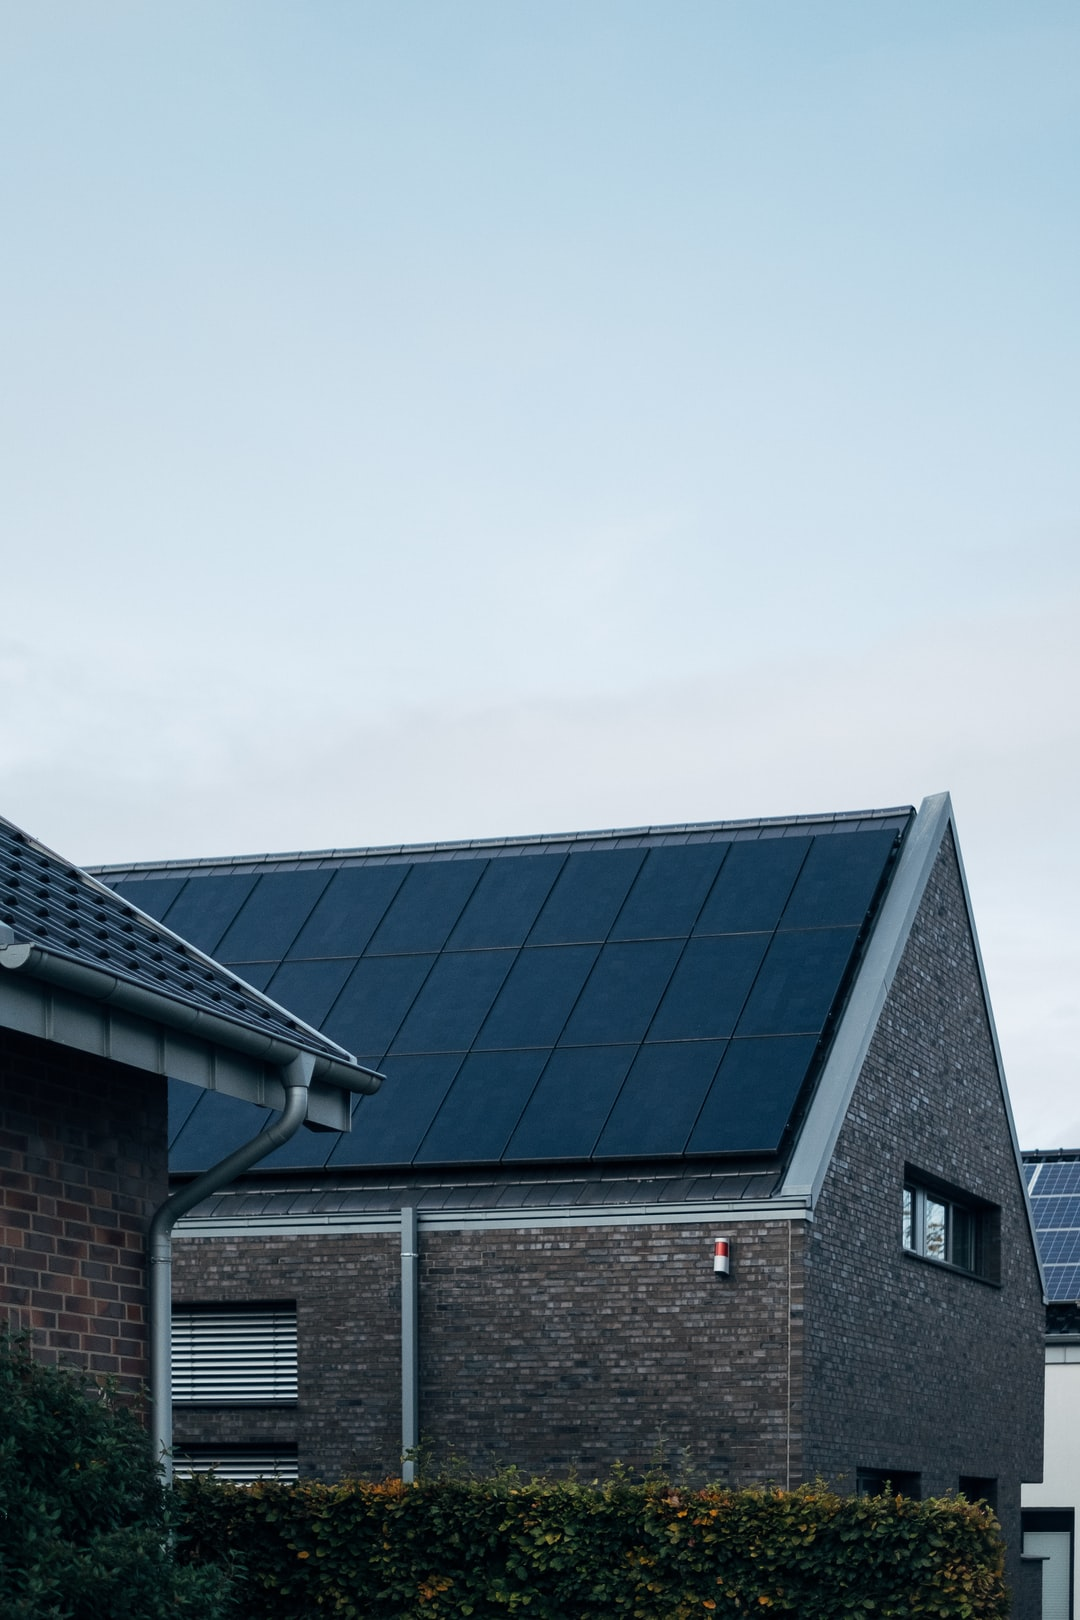 Thinking About Solar? Do This First